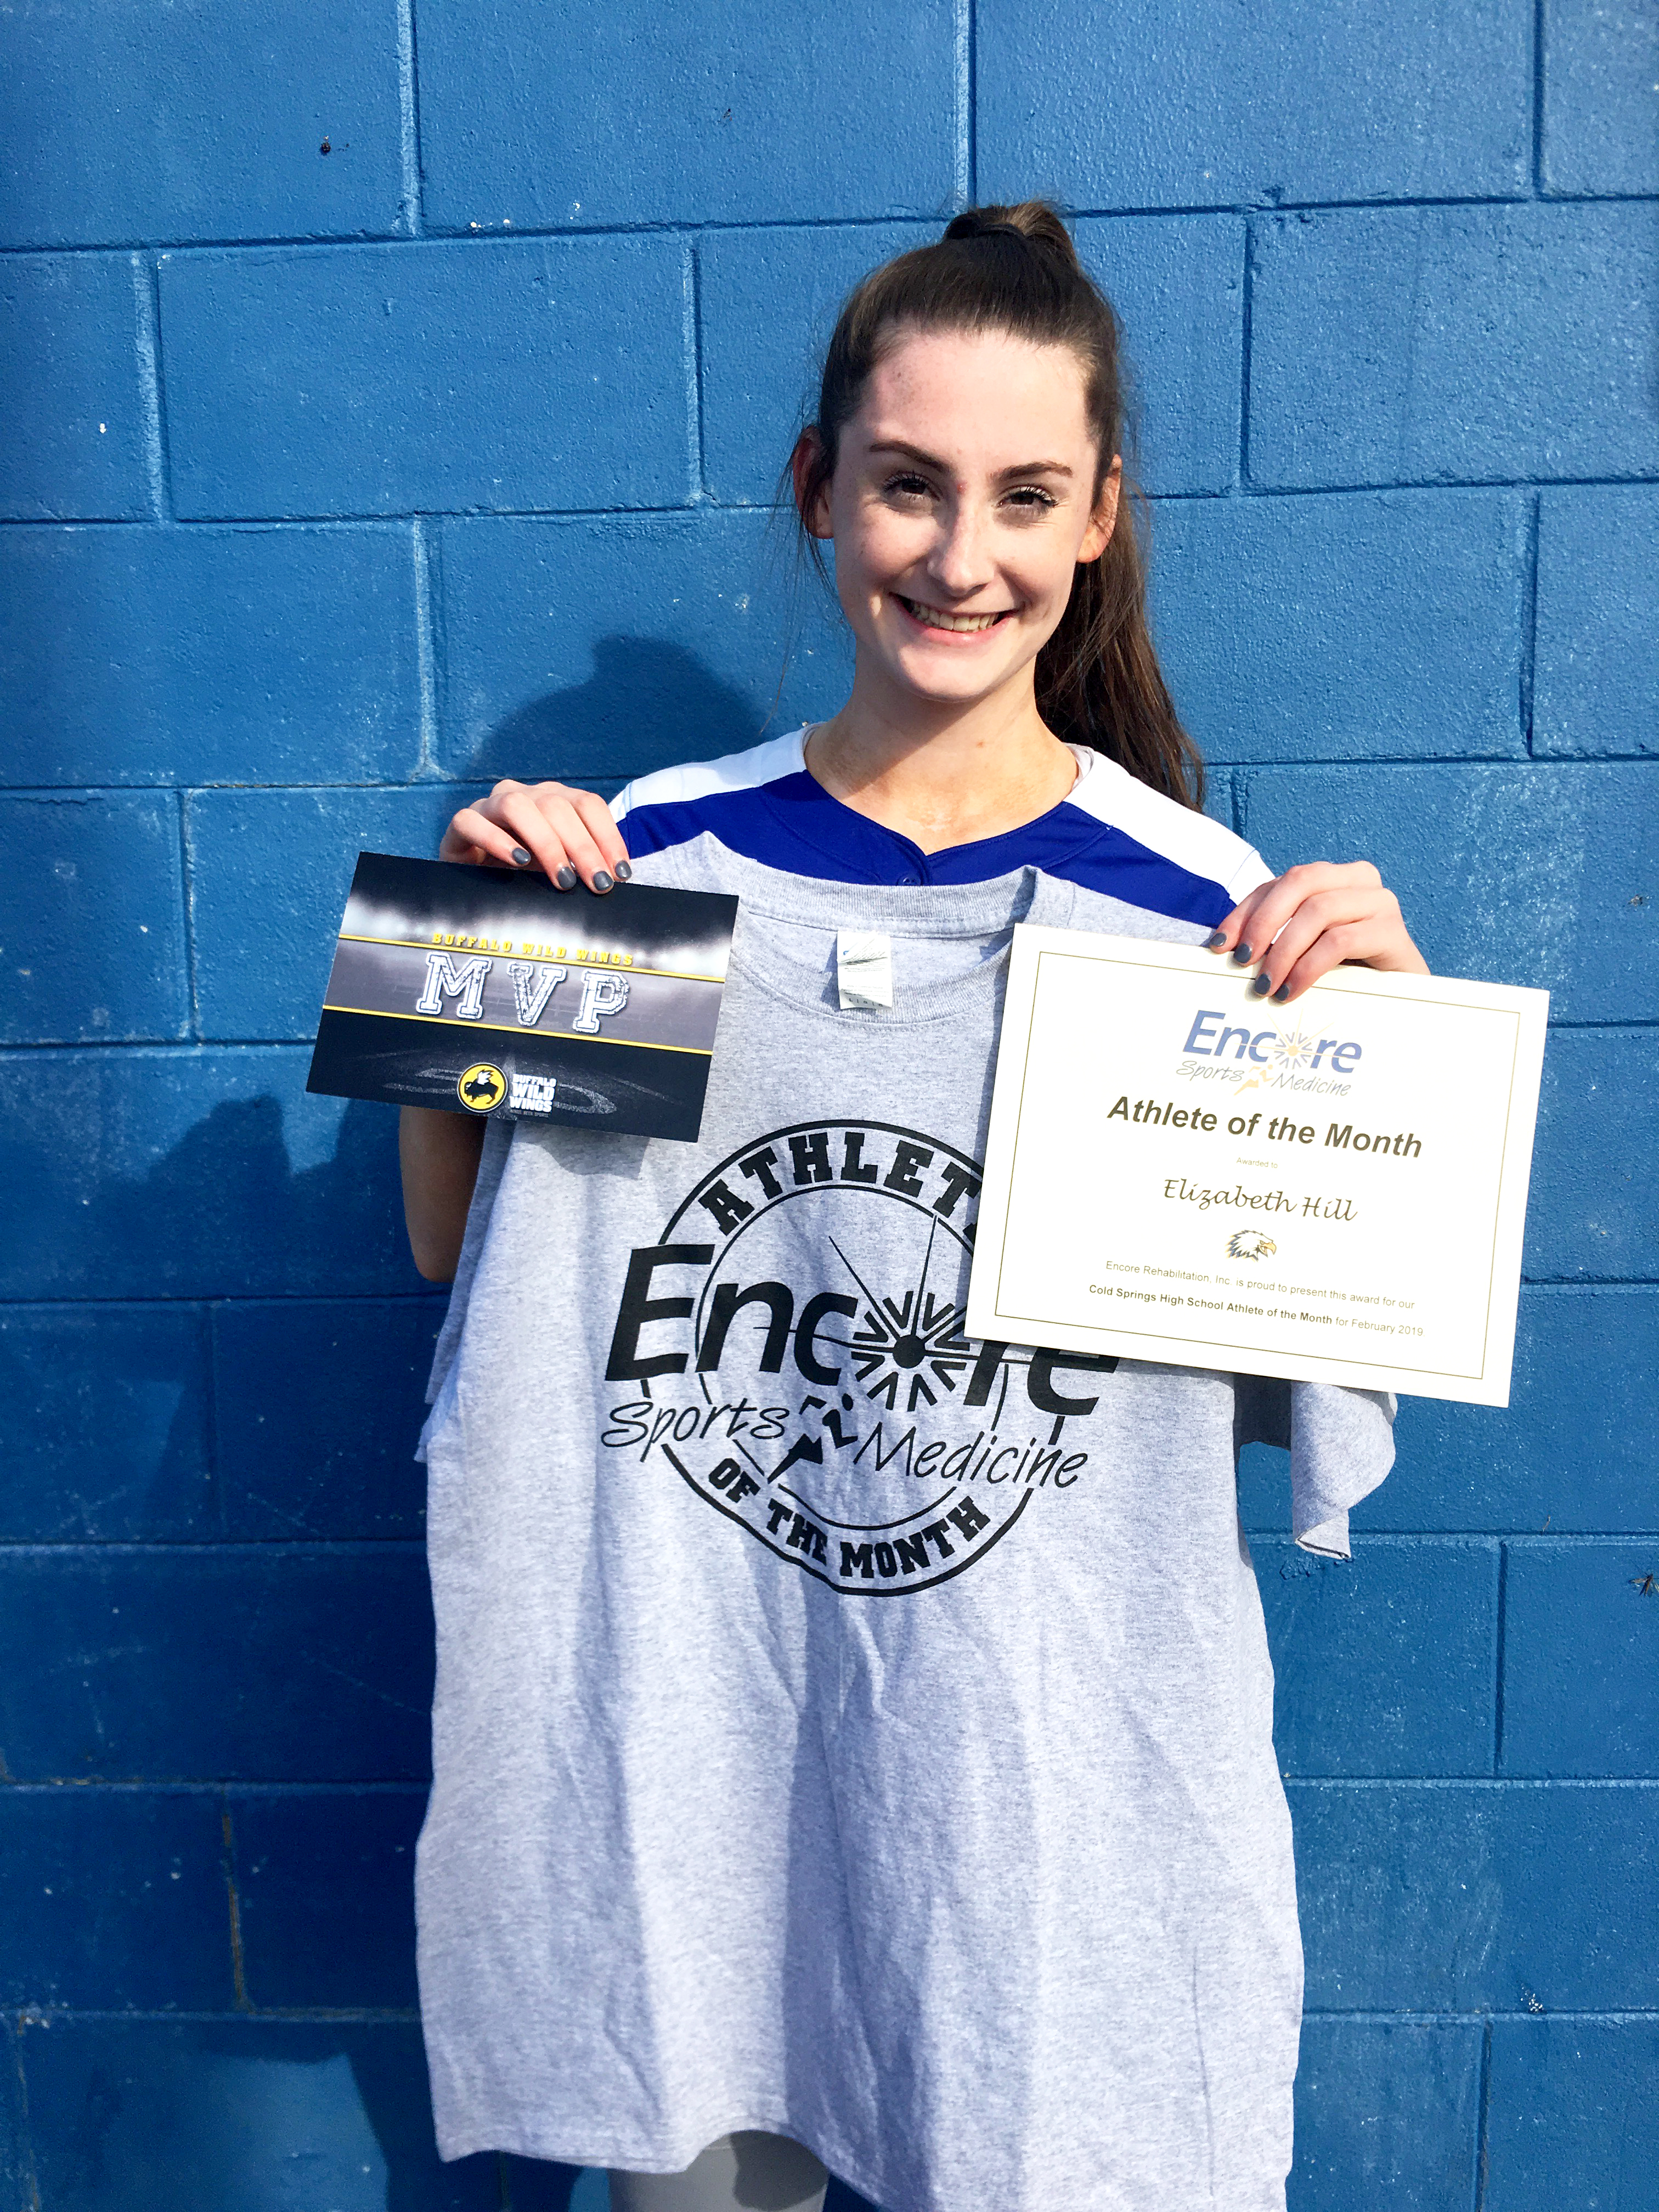 Elizabeth Hill is Athlete of the Month for Cold Springs High School and Encore Rehabilitation-Cullman #EncoreRehab